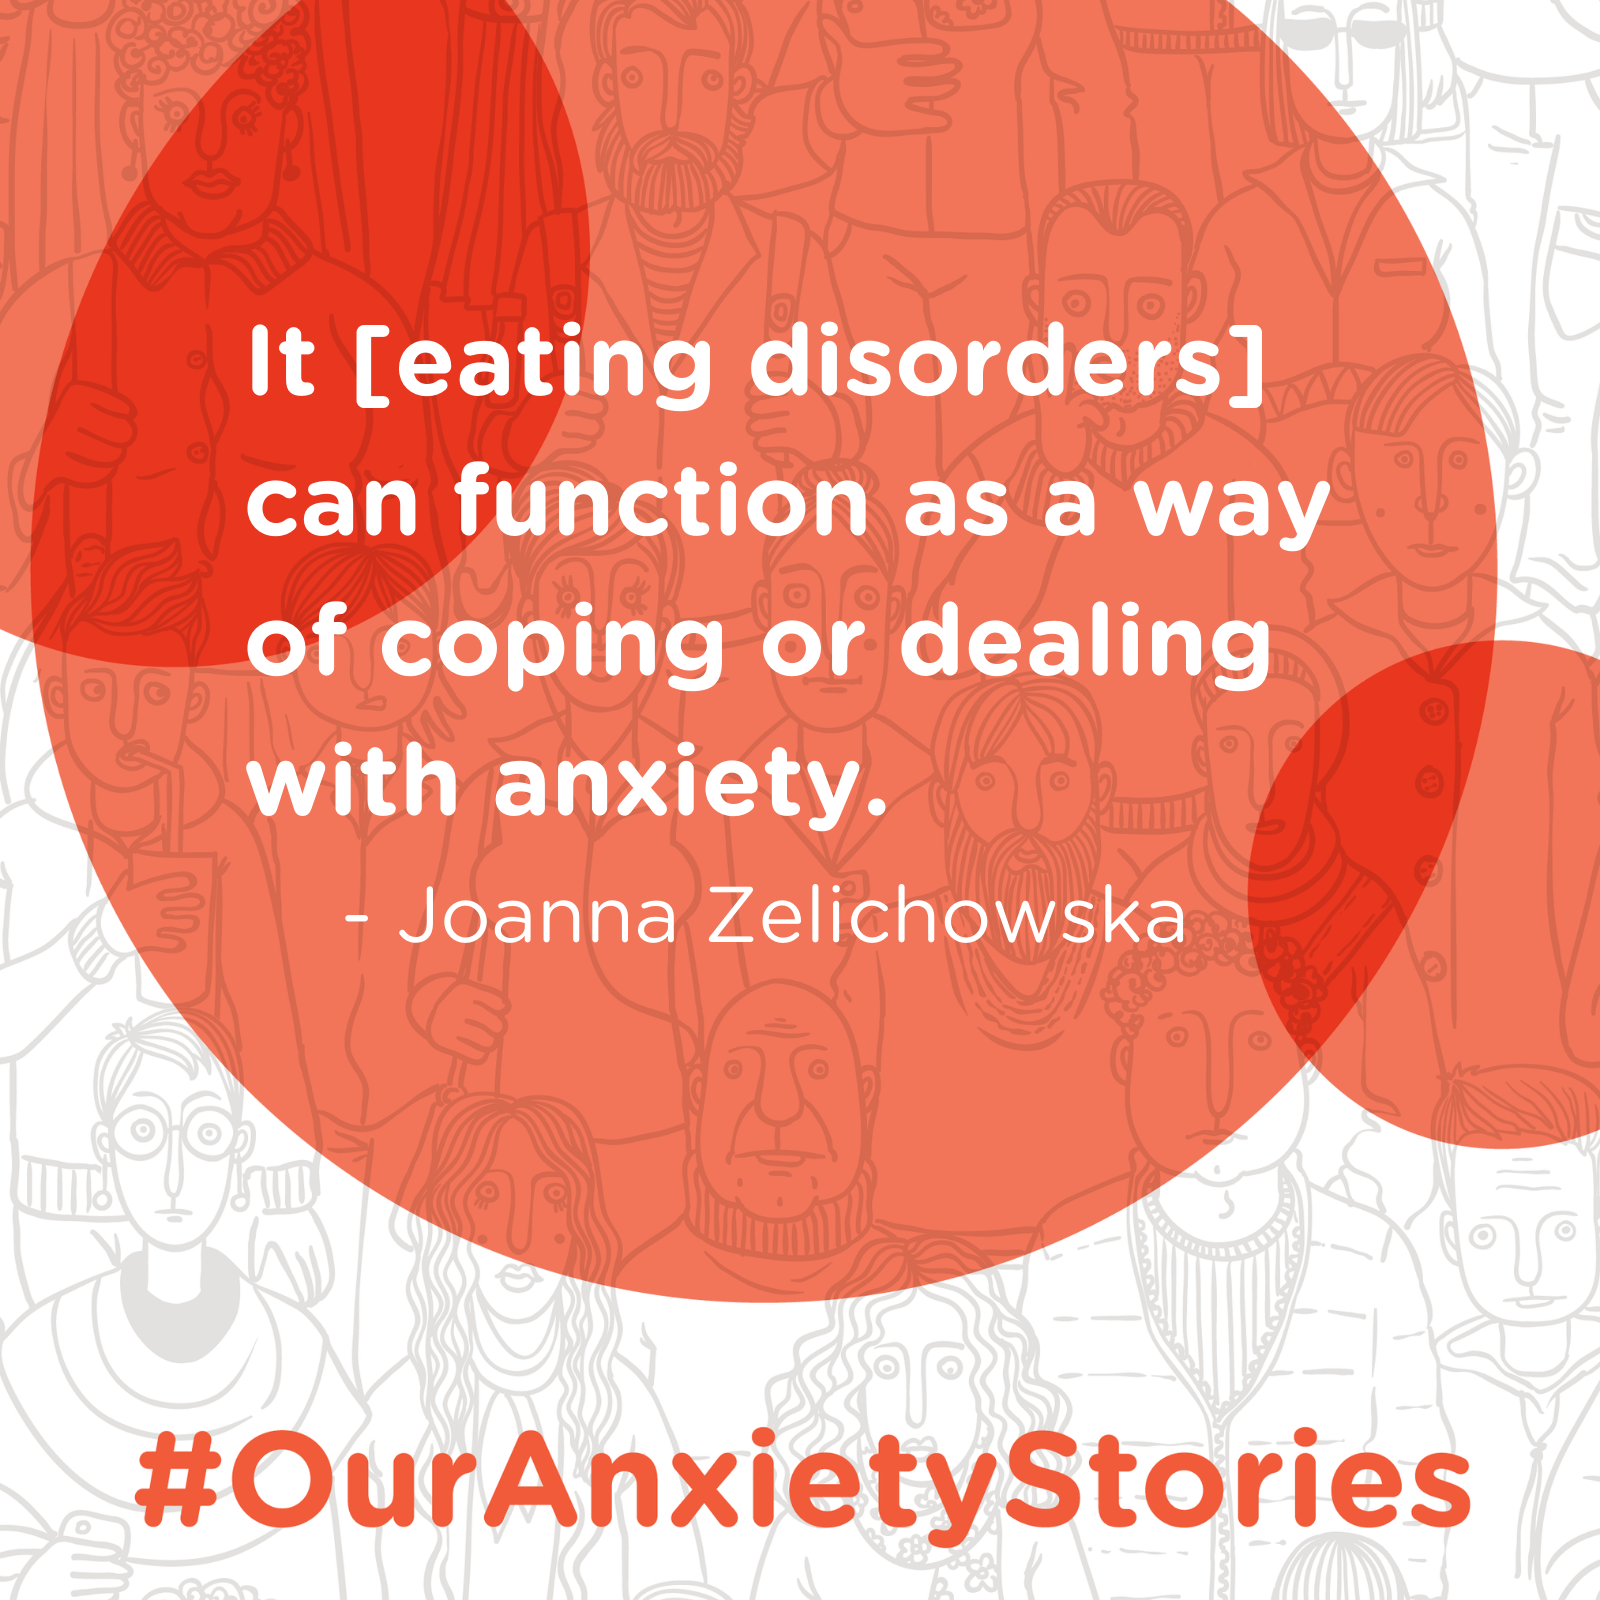 Anxiety and Eating Disorders with Joanna Zelichowska